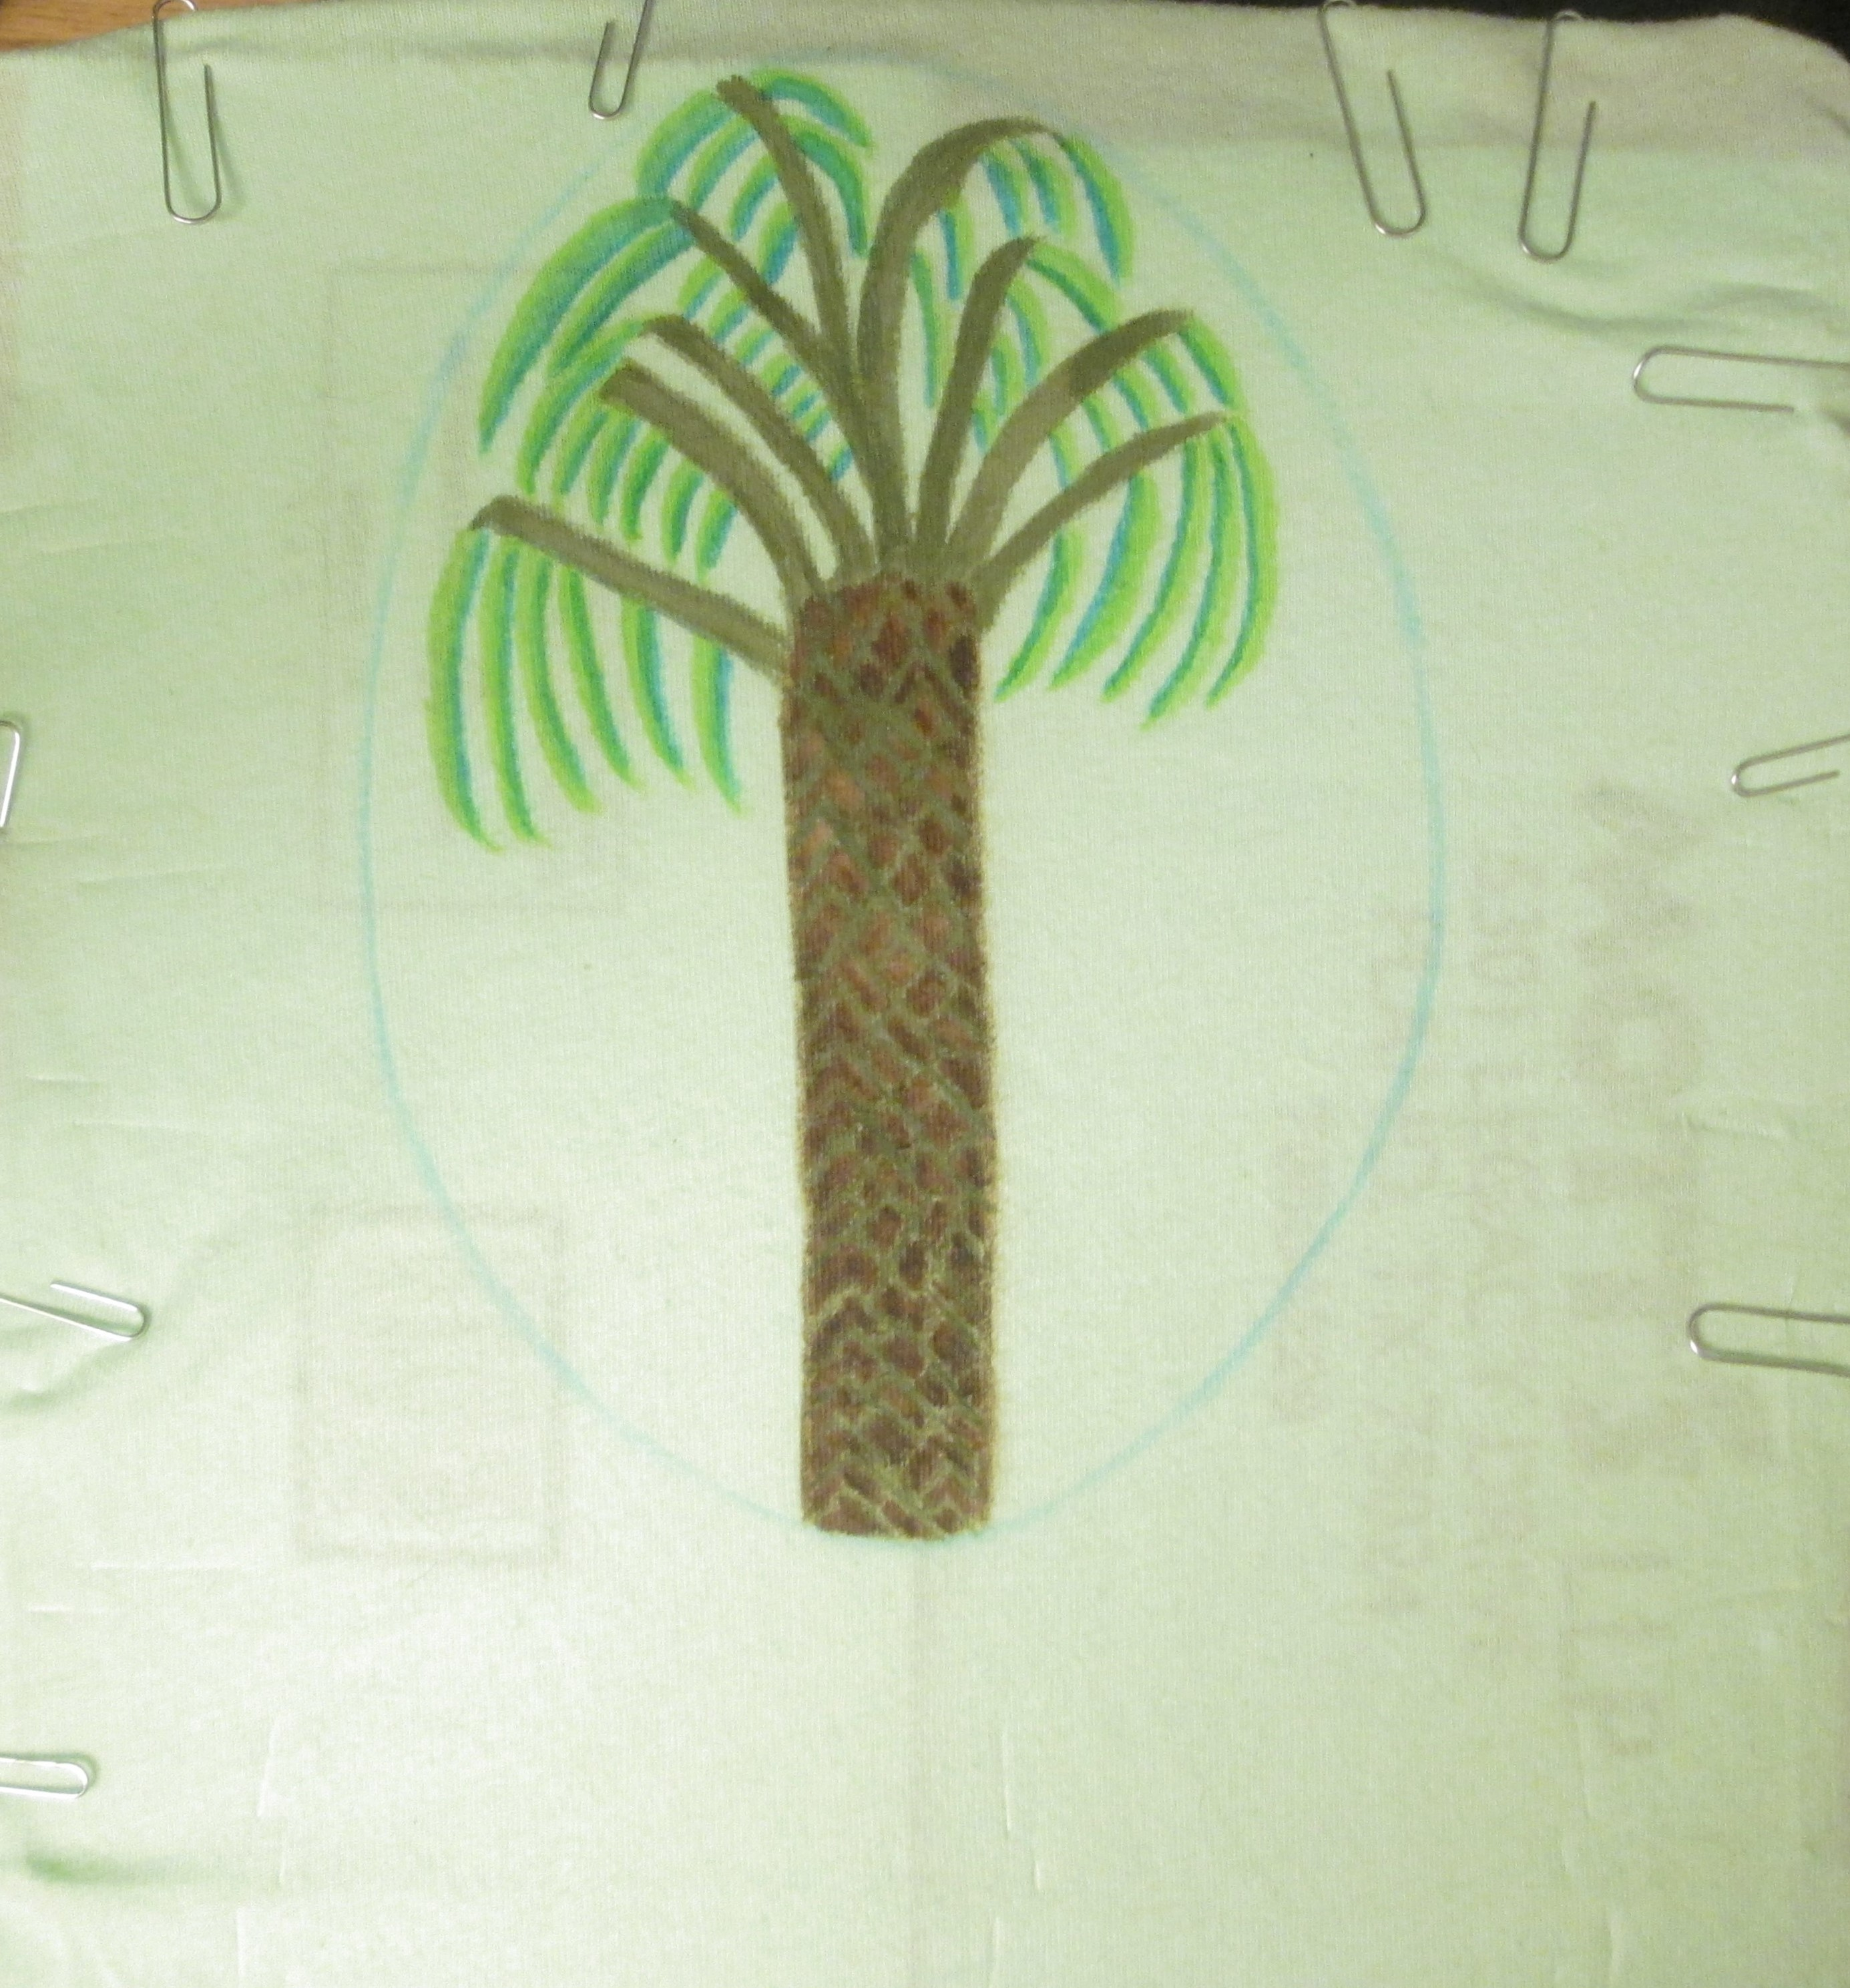 I used to different shades of green to create the palm tree fronds.